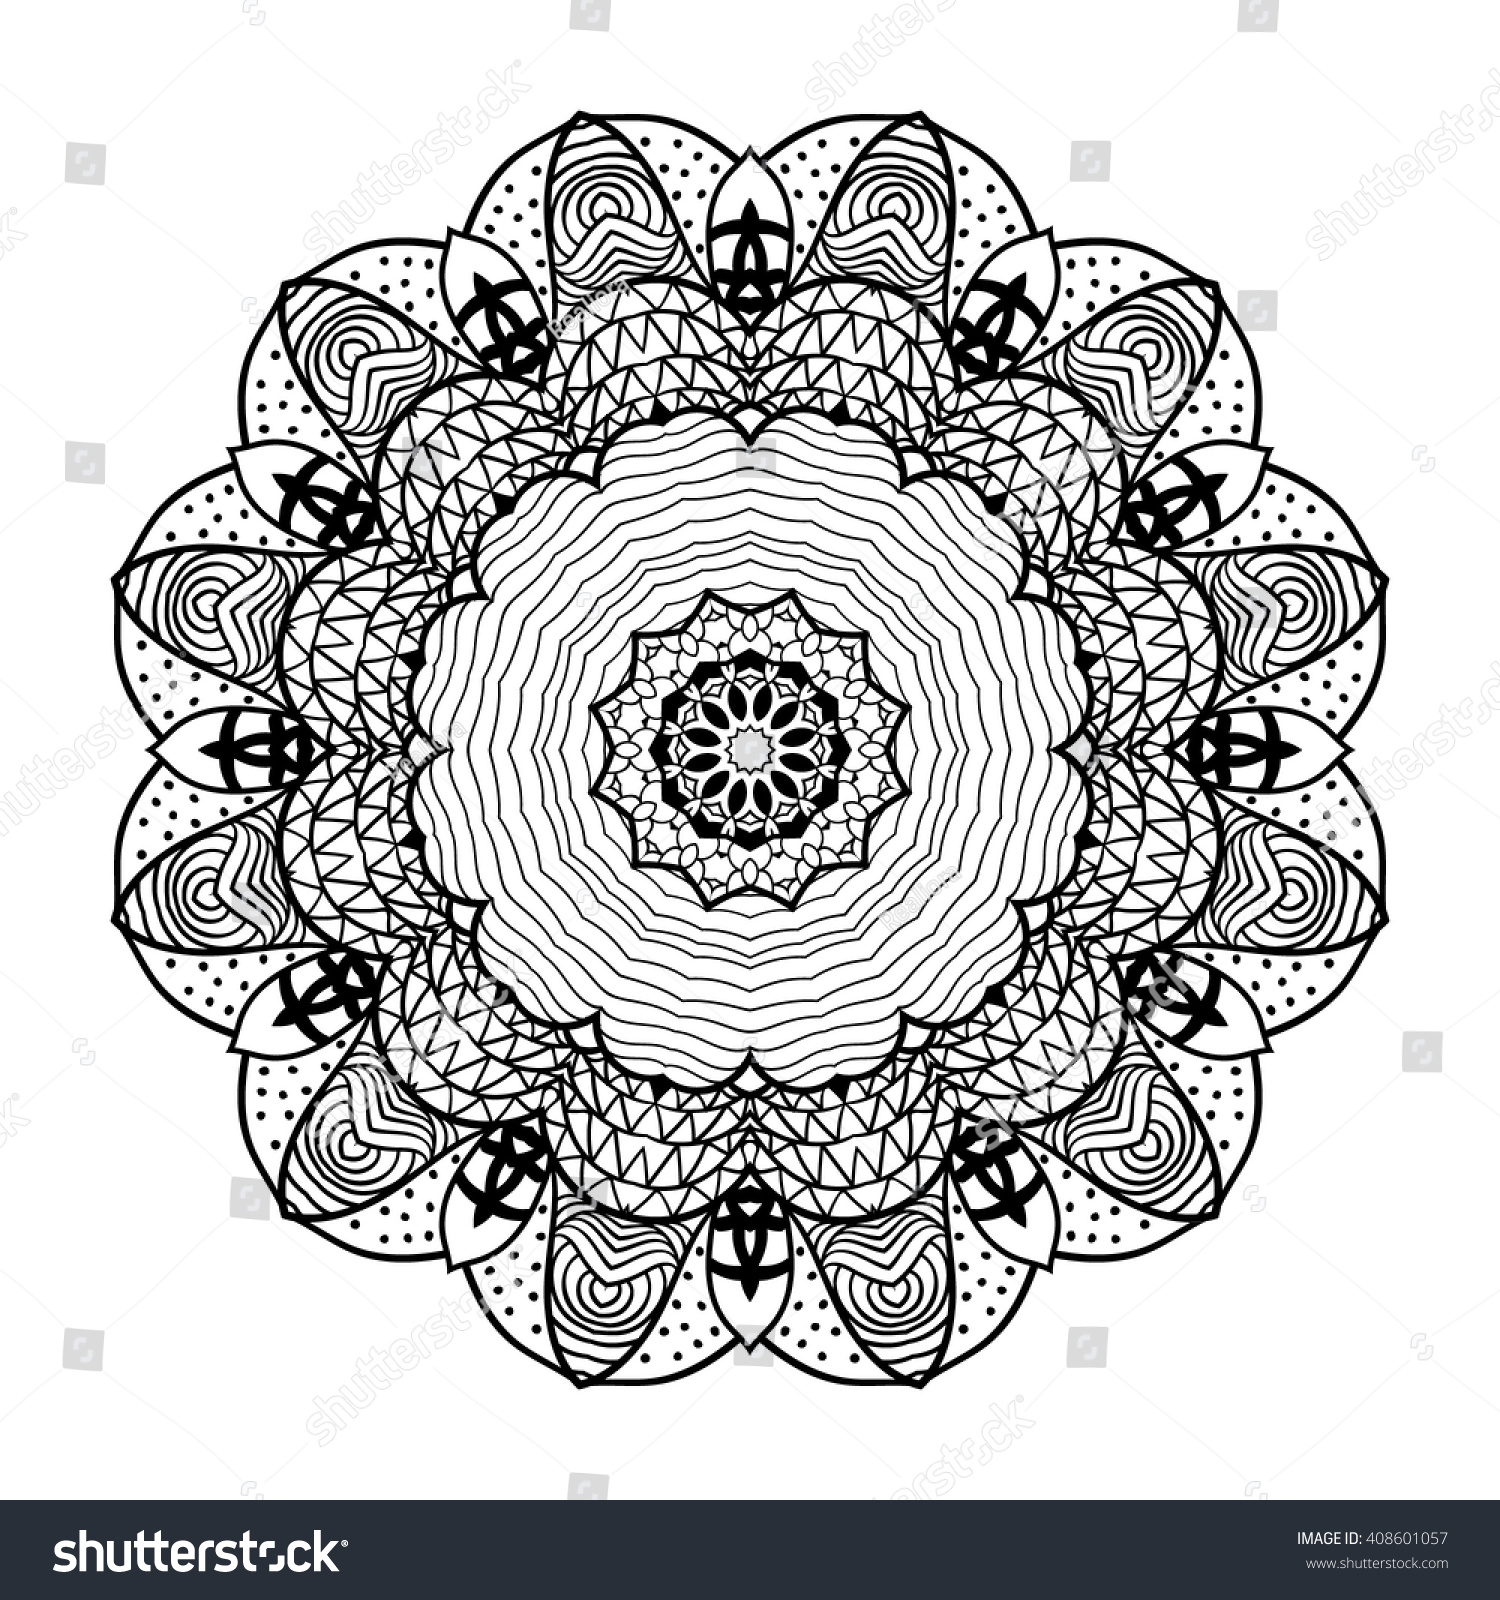 Zendoodle Coloring Pages Adult Coloring Page Mandala Vector Art Stock Vector 408601057